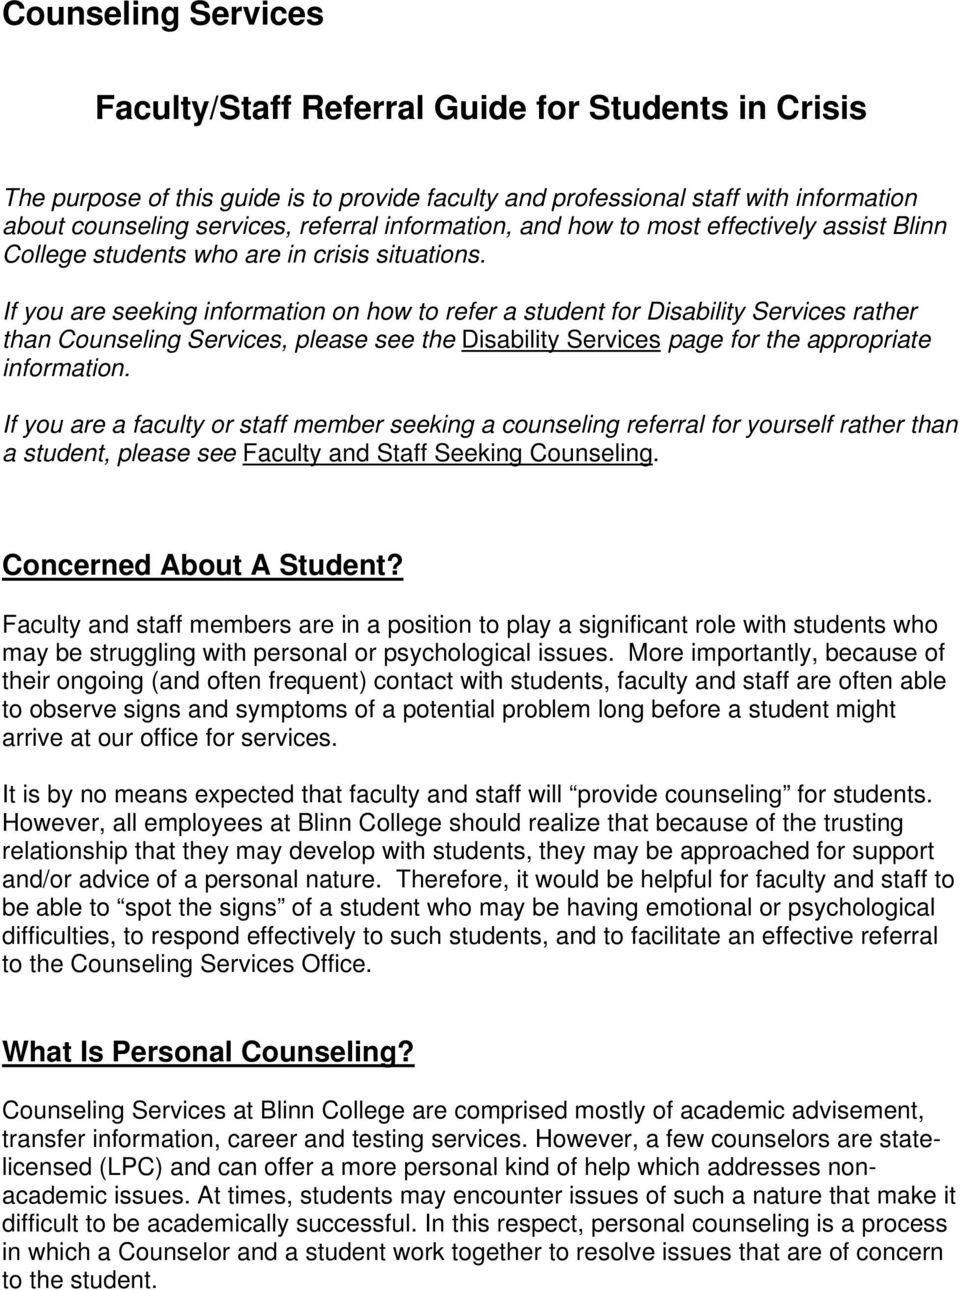 If you are seeking information on how to refer a student for Disability Services rather than Counseling Services, please see the Disability Services page for the appropriate information.